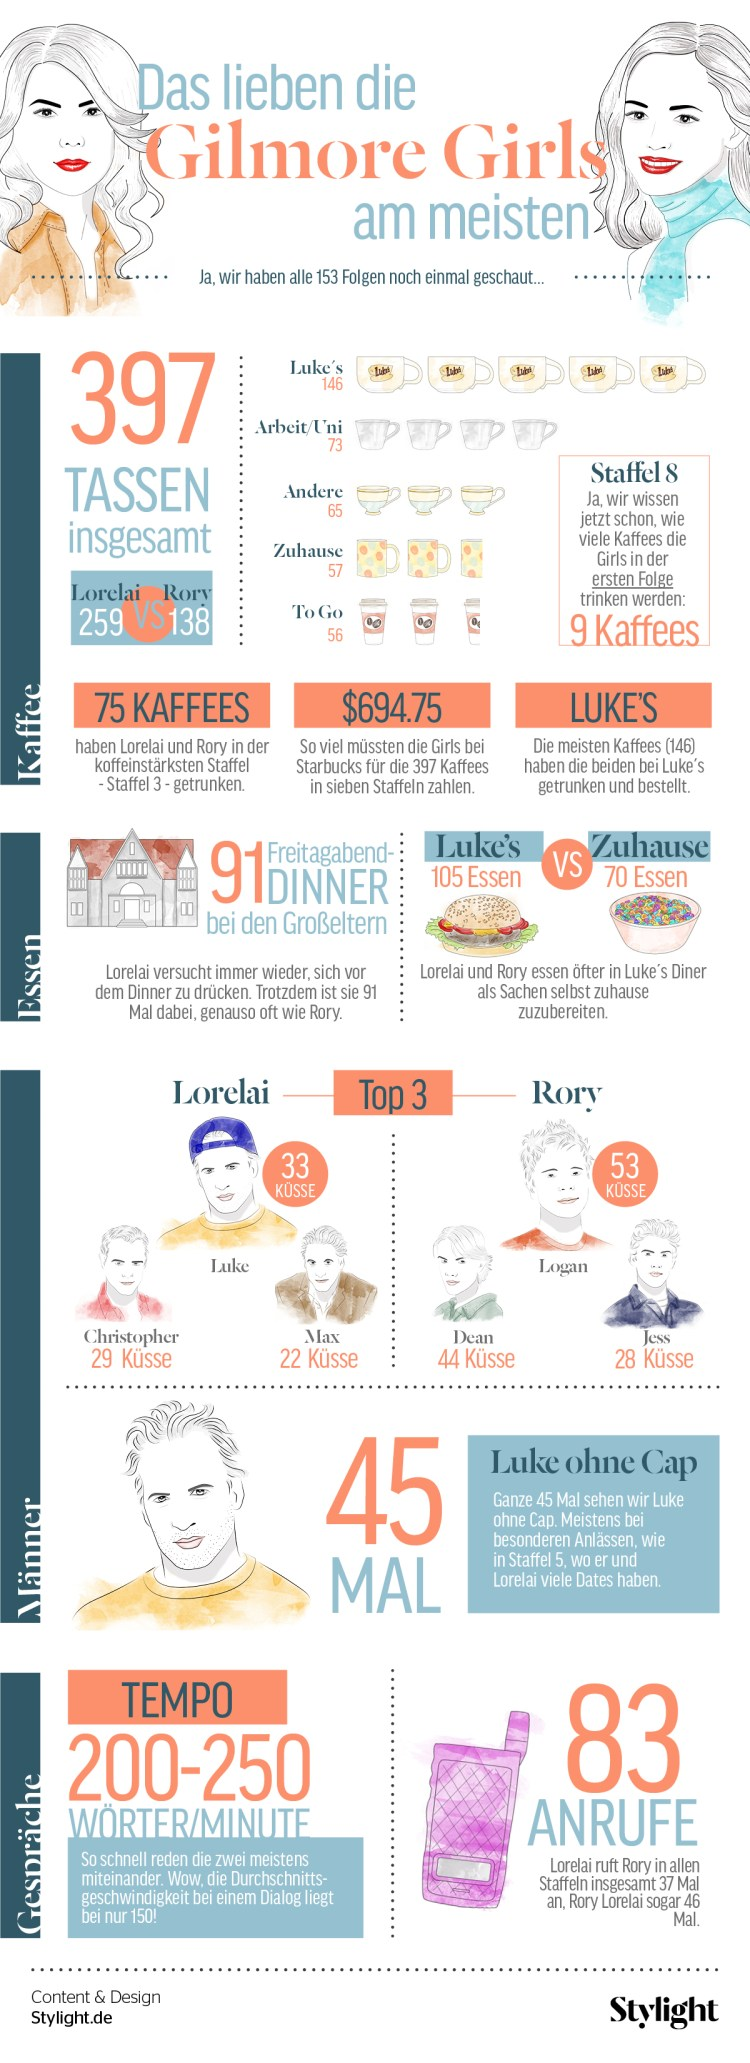 stylight-gilmore-girls-in-zahlen infografik